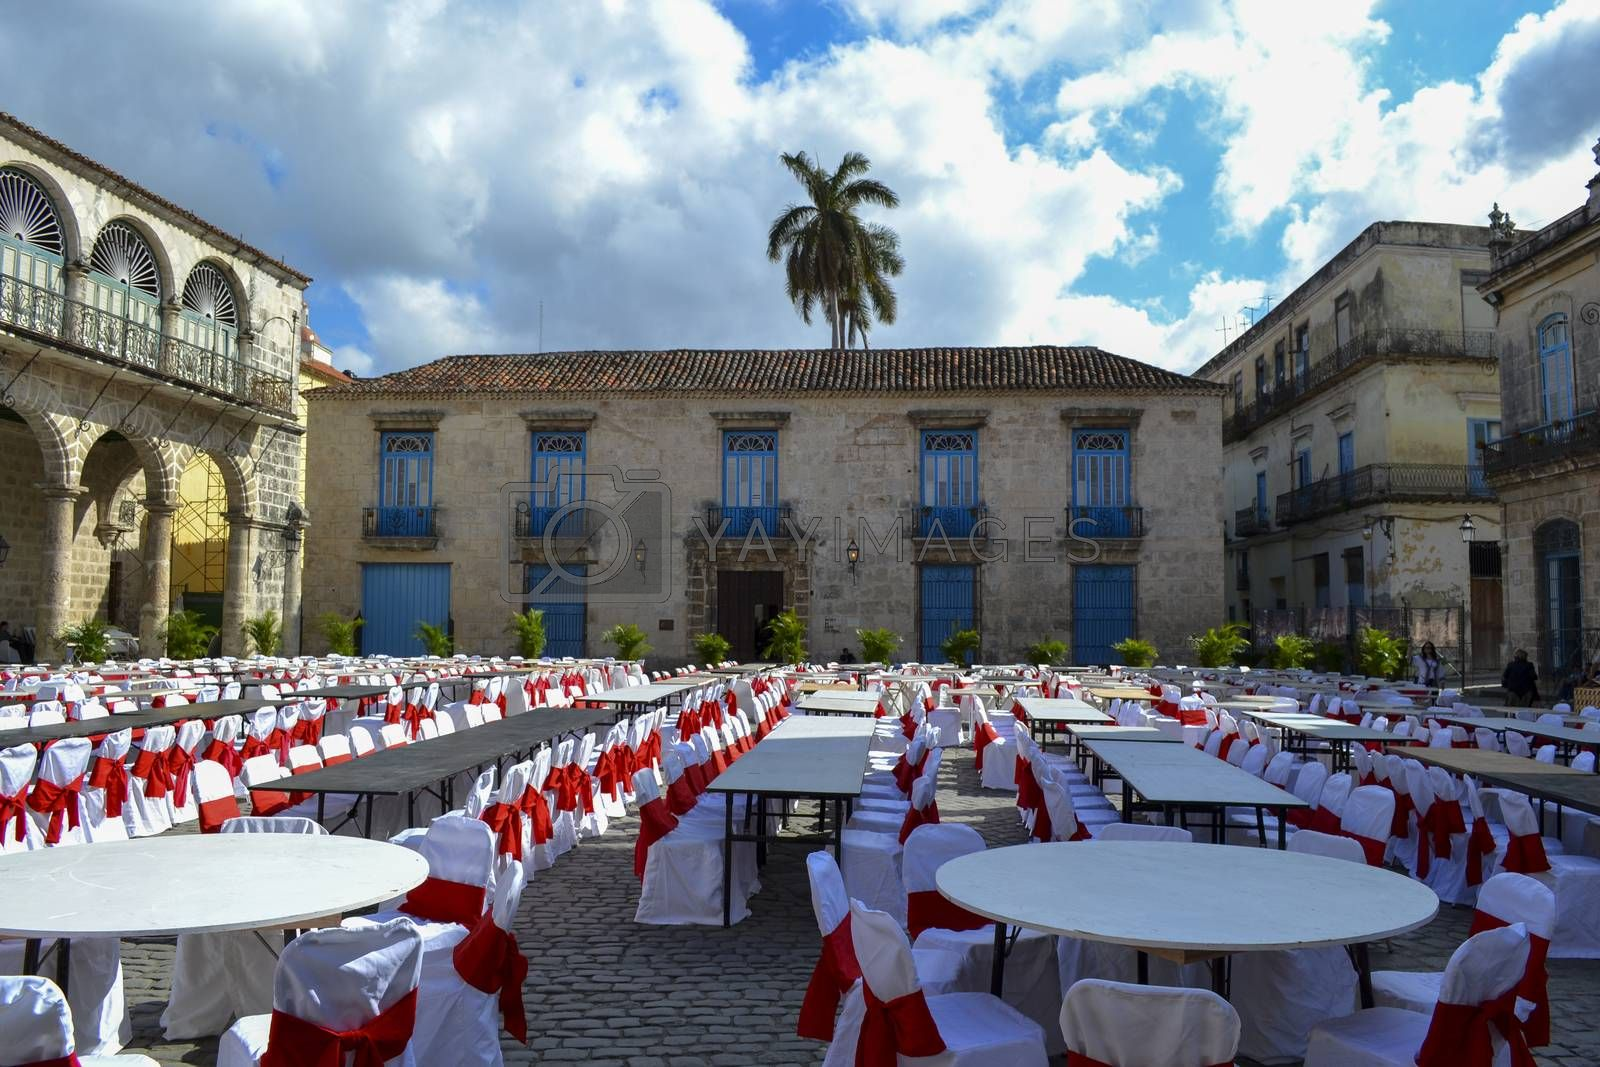 Havana, Cuba, February 2011: city square prepared for festivities, empty chairs and tables; ready to receive people